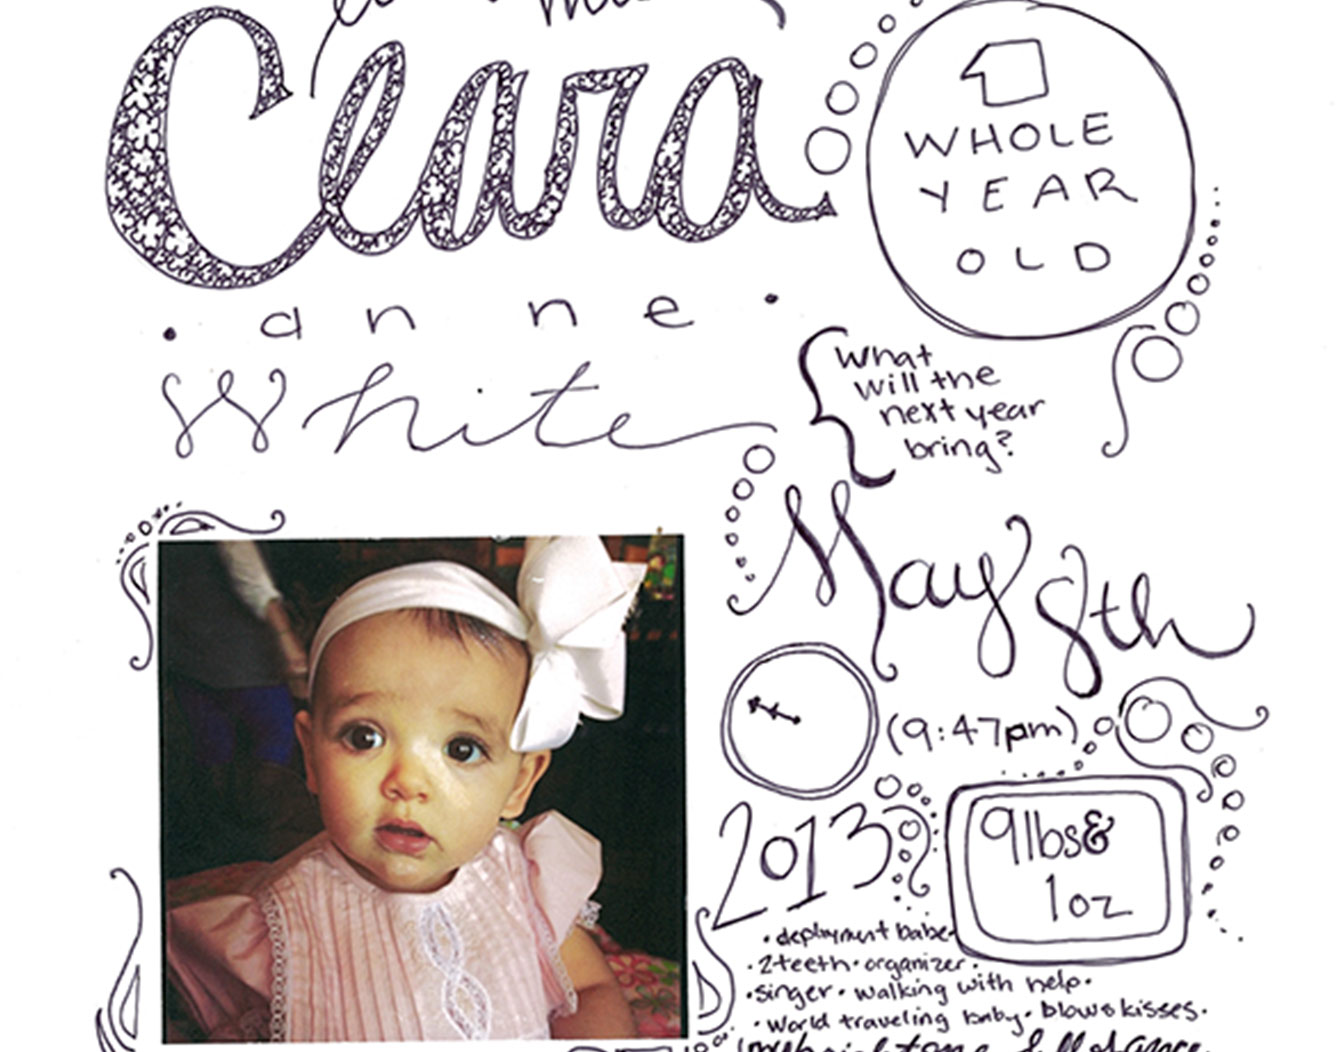 Baby birthday invitation with photo and handwritten text